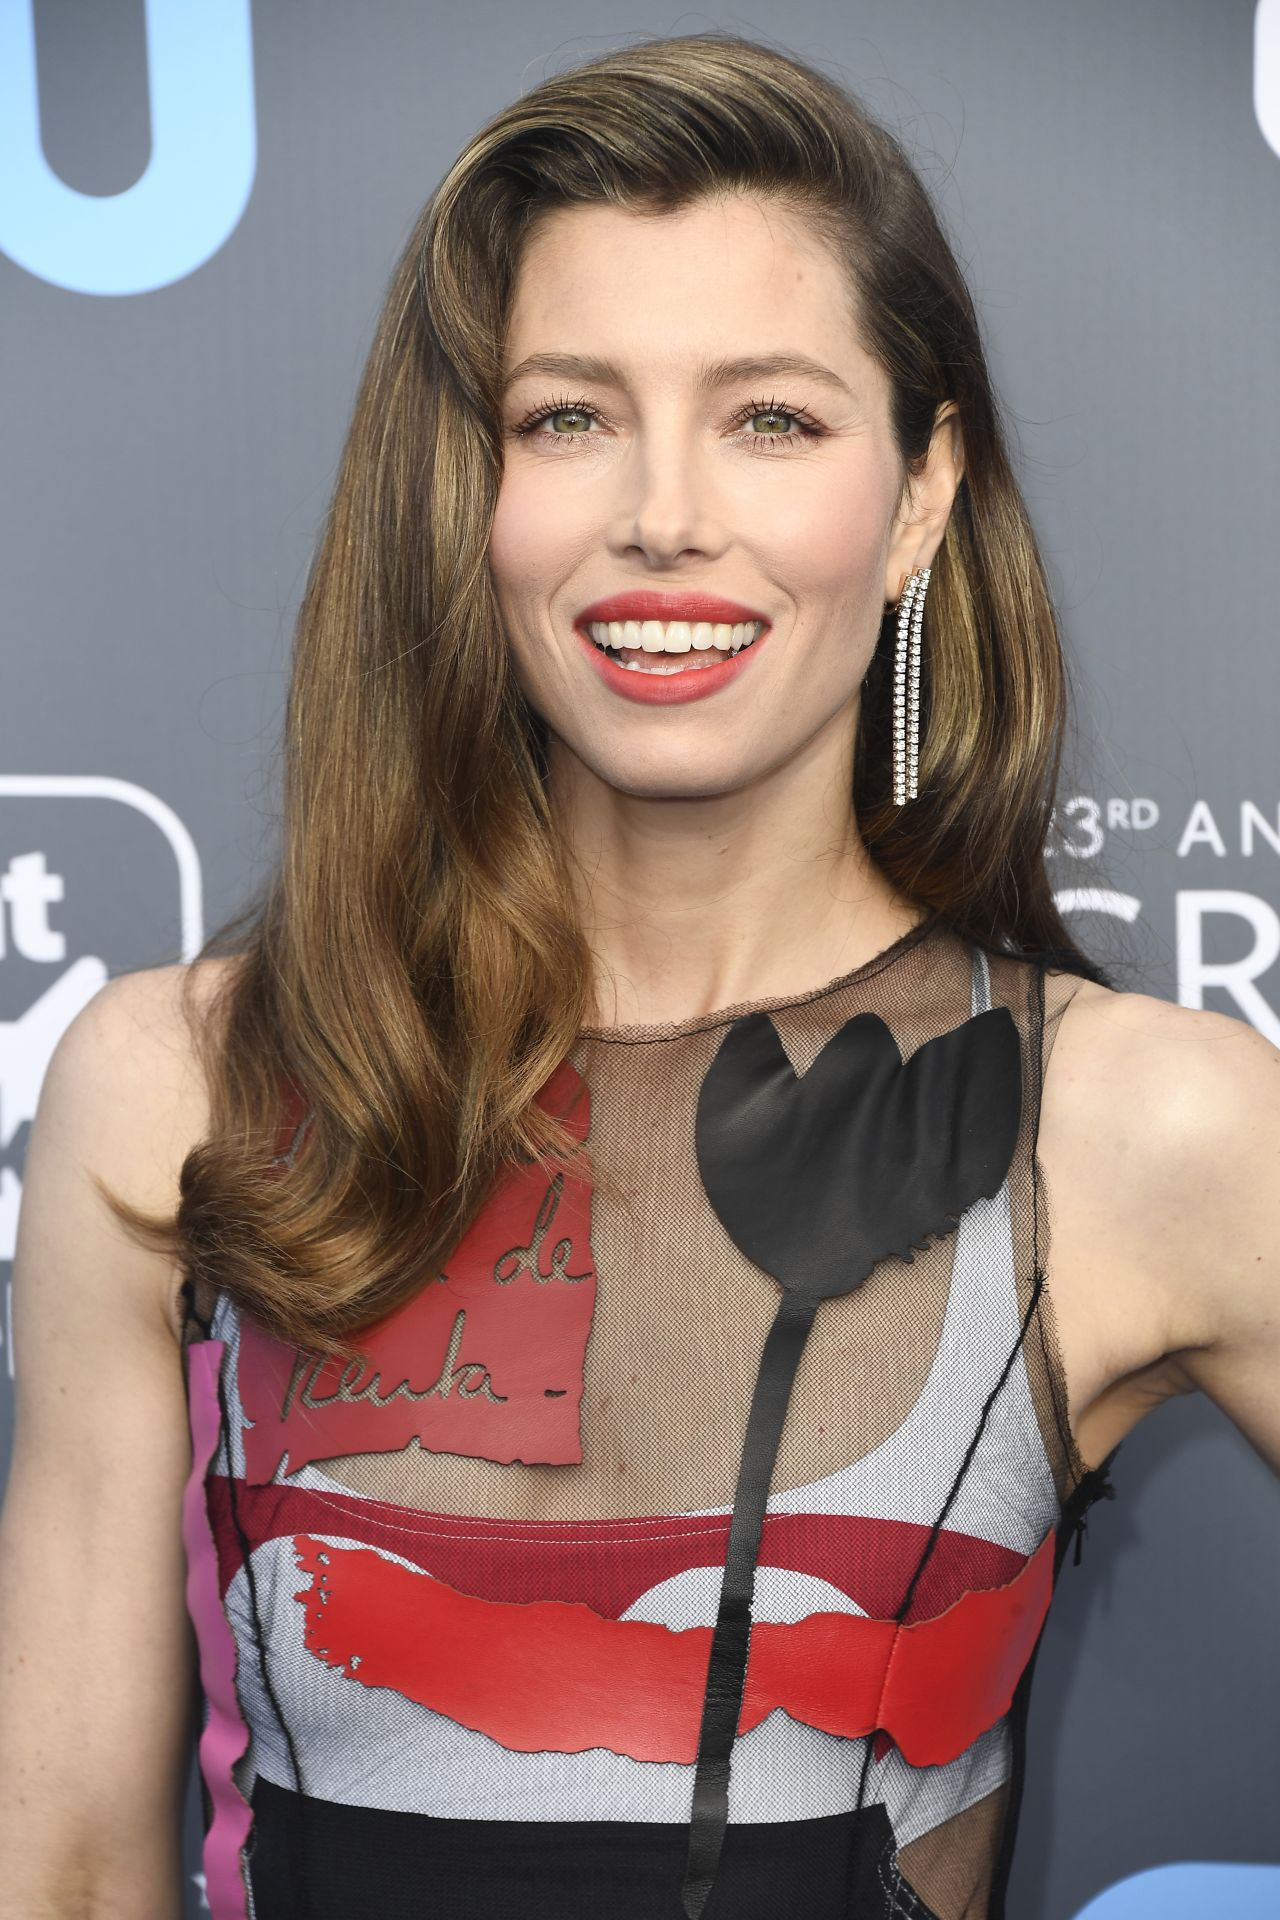 Jessica Biel – 2018 Critics' Choice Awards Jessica Biel